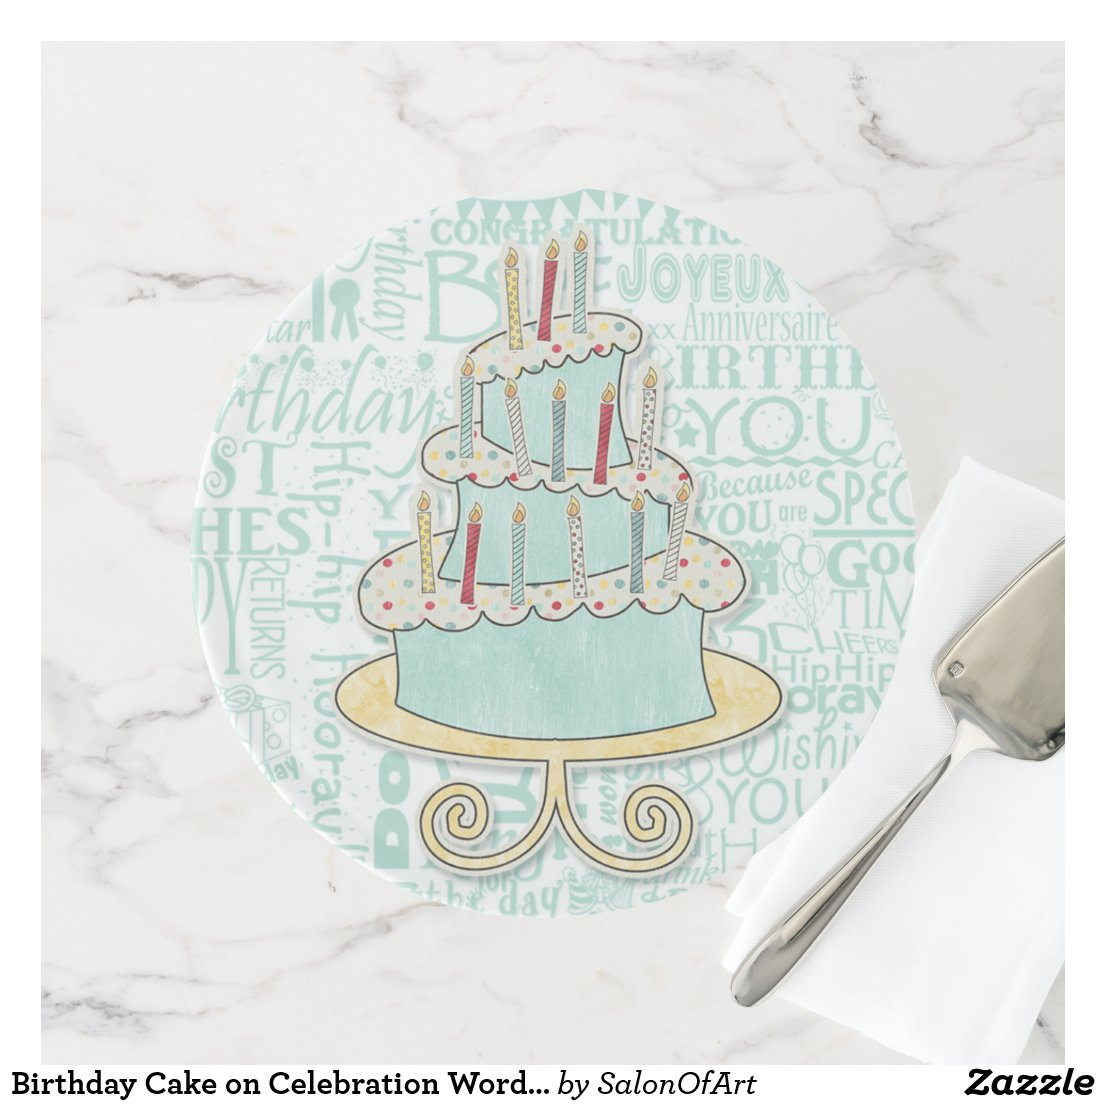 Birthday Cake on Celebration Word Art